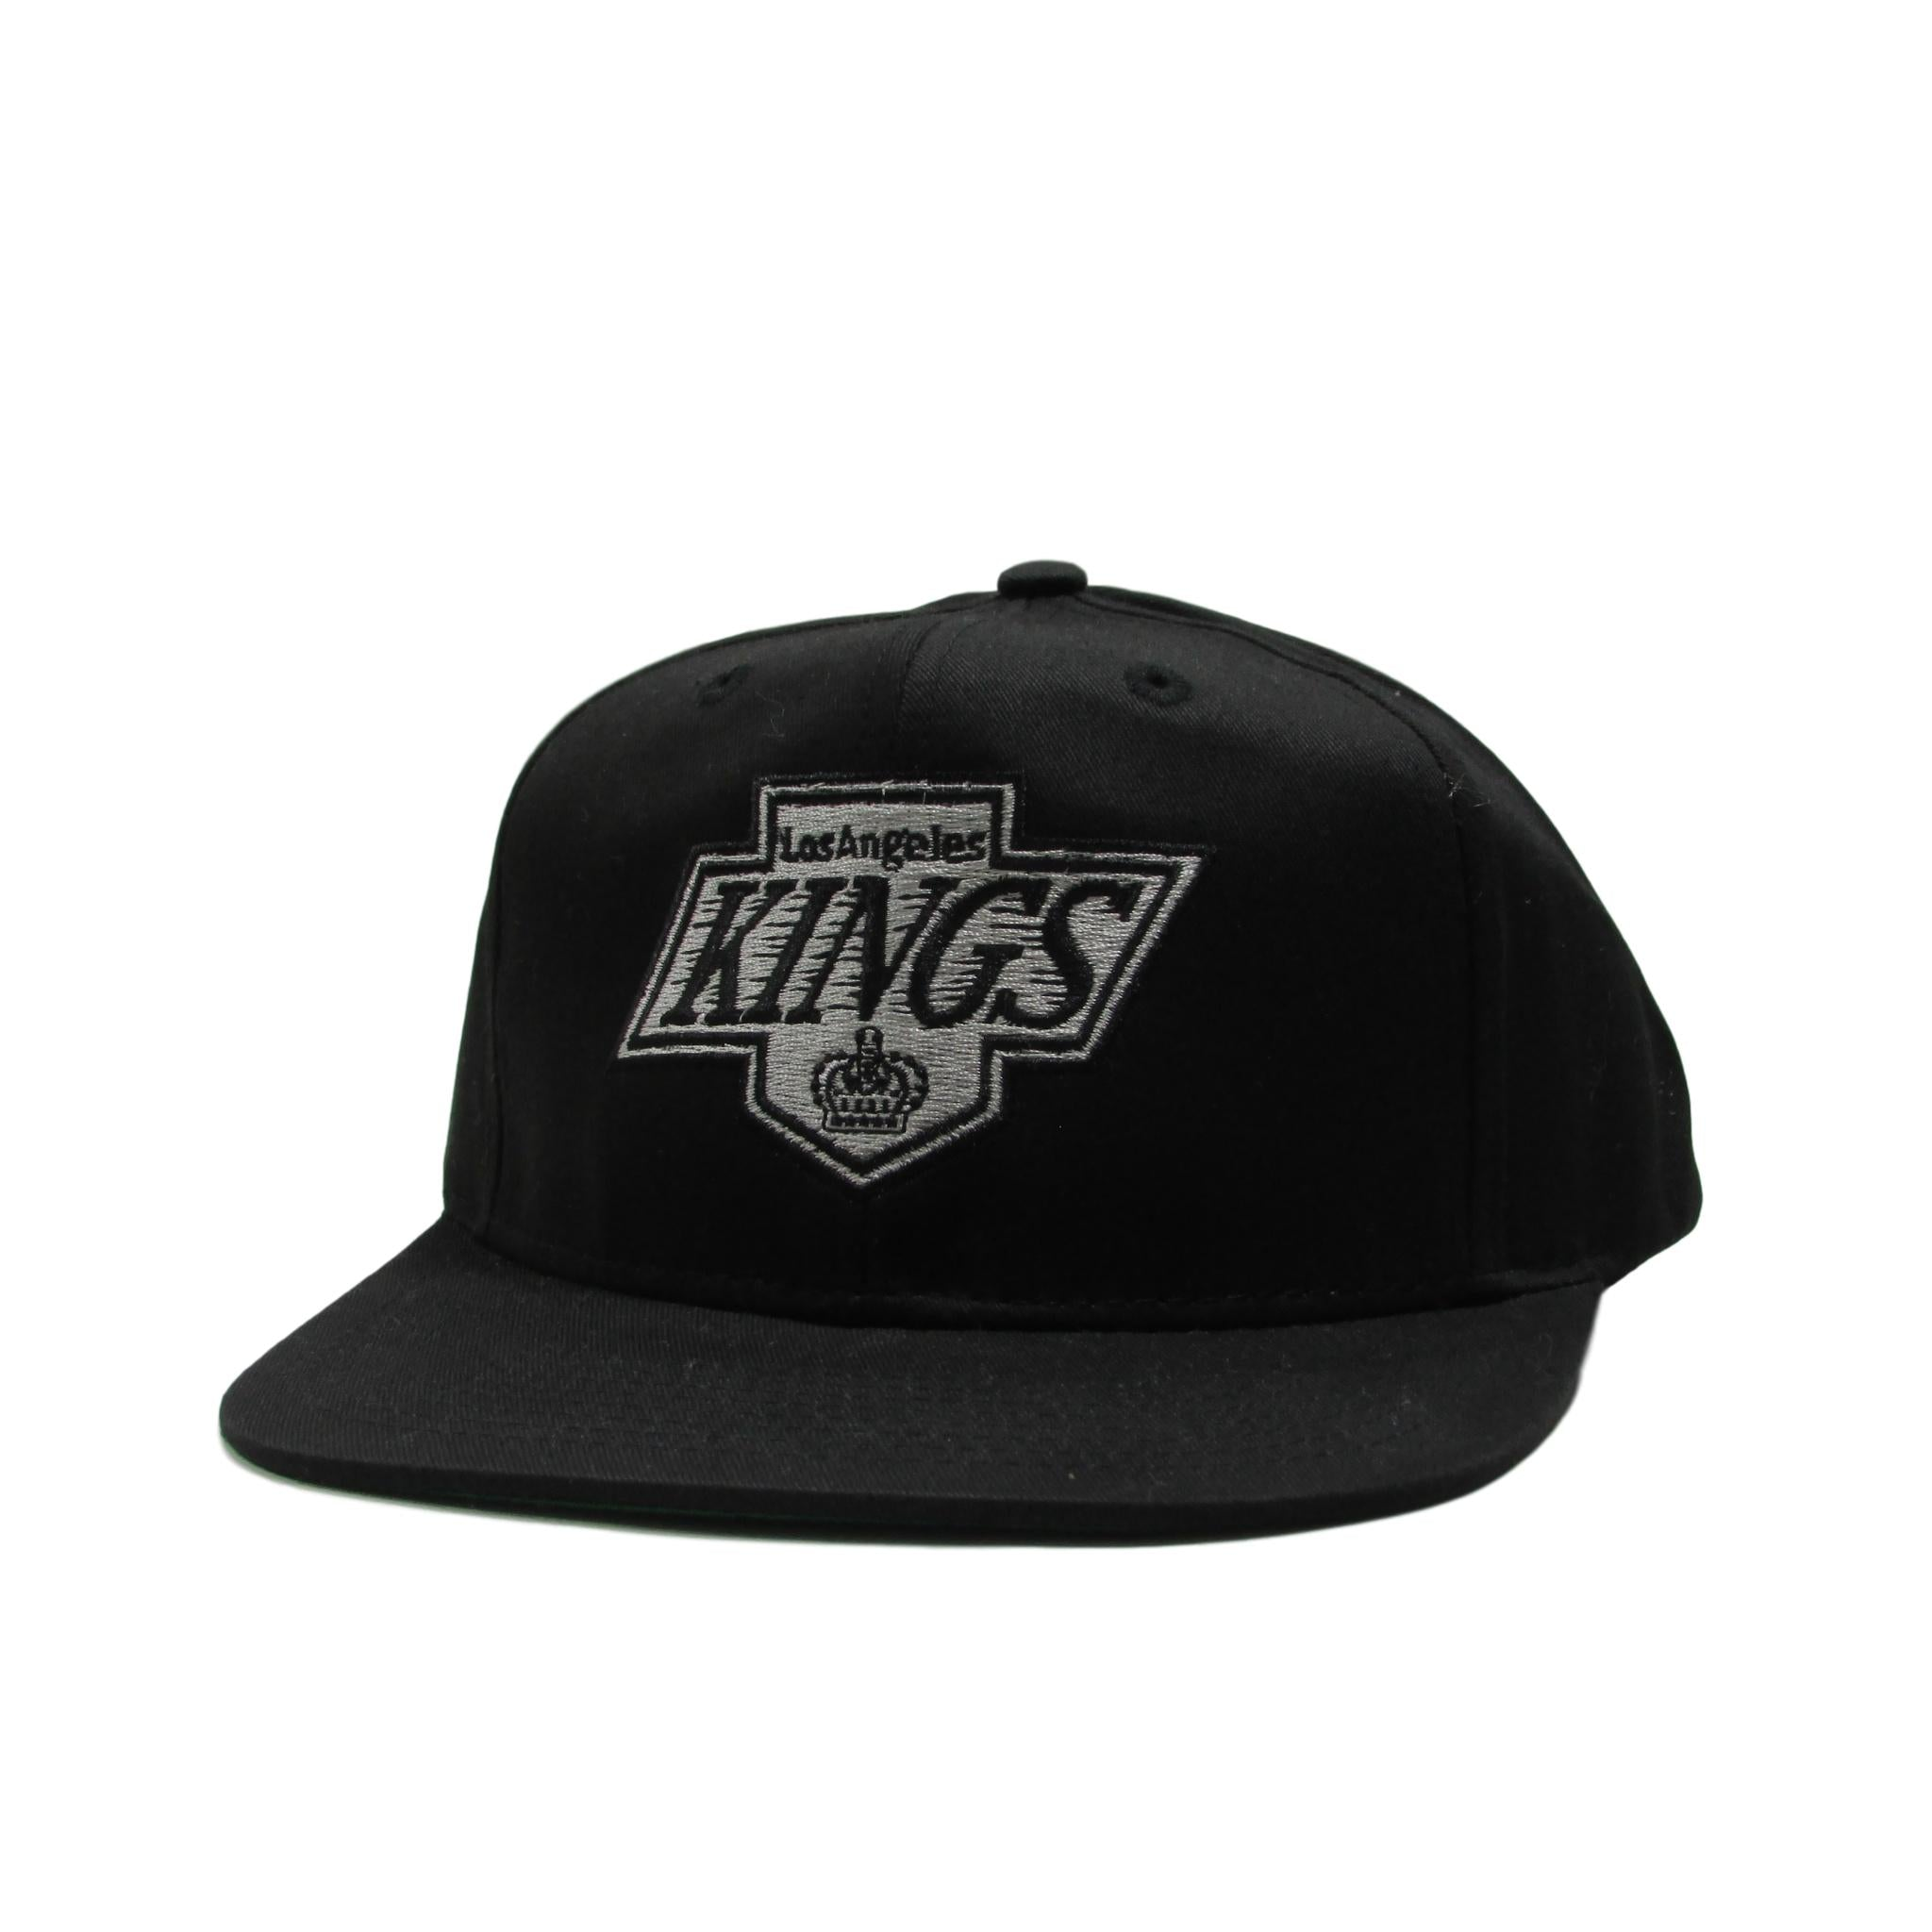 Los Angeles Kings Vintage 1988 Hockey Logo Snapback Hat